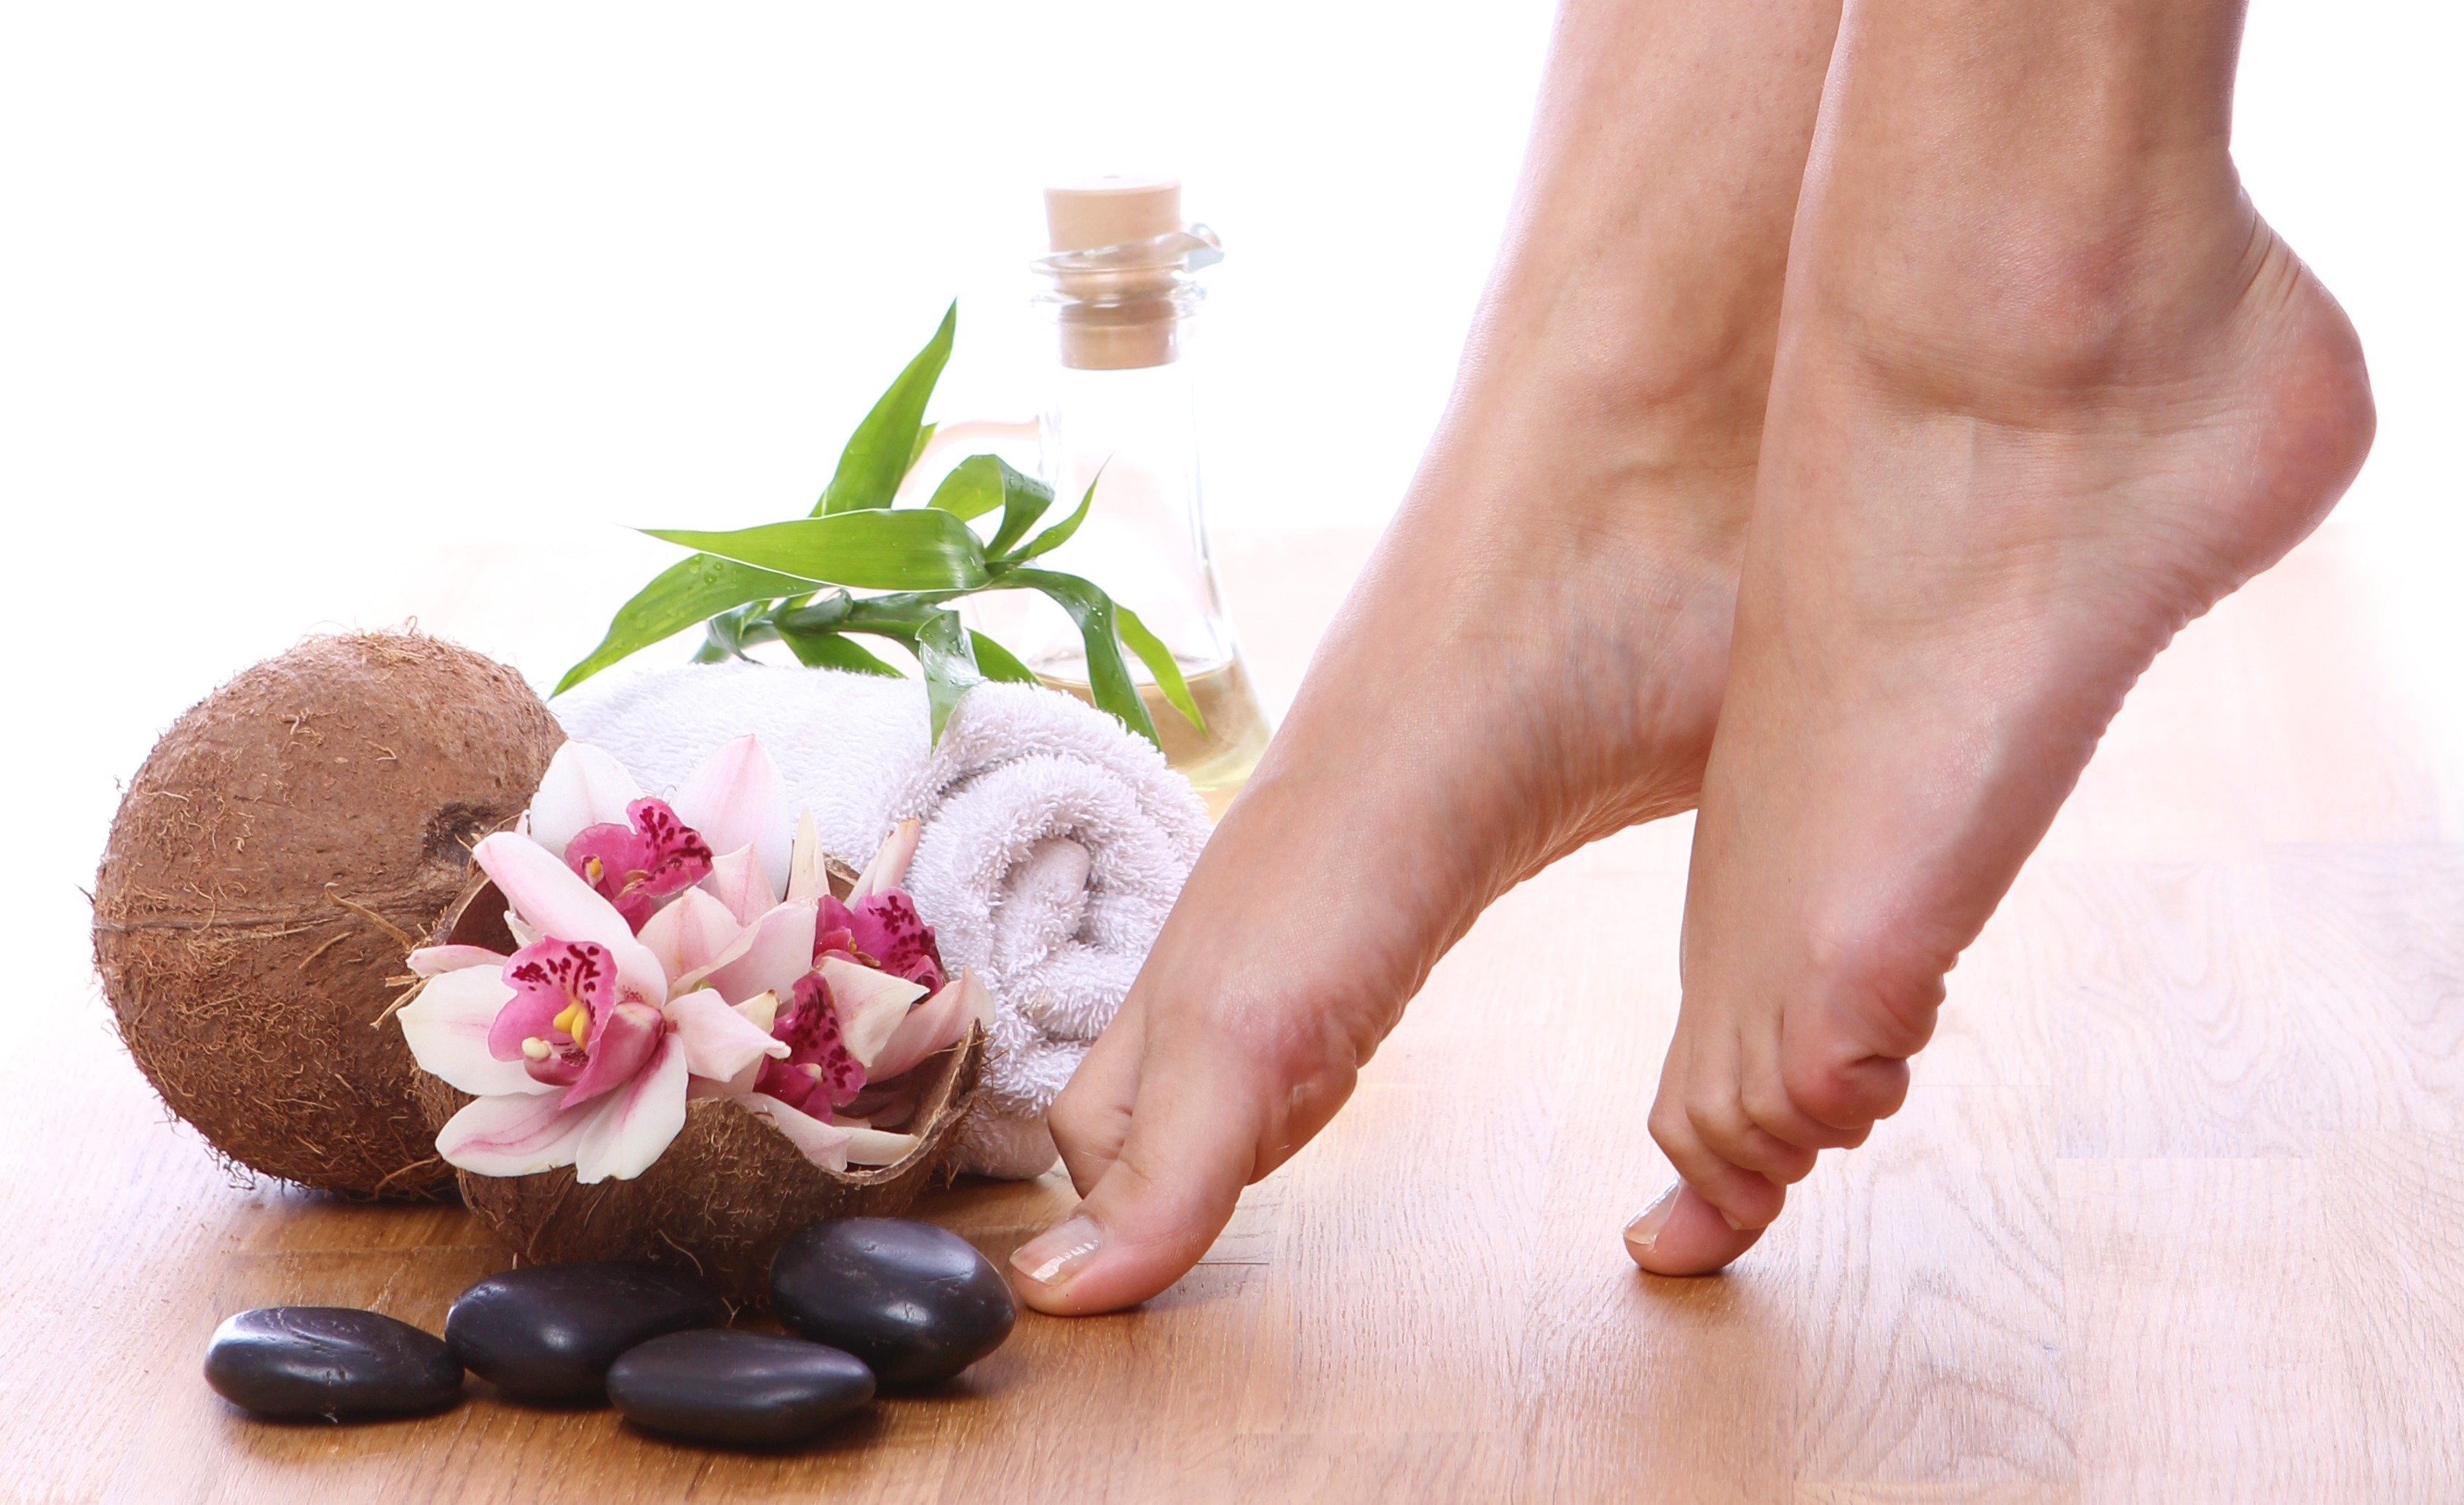 Foot spa at home: Guide to pampering your happy feet<div><span style='color:#a0a0a0;font-size:16px;text-transform:none;line-height:1.1'>Give your feet the love they deserve!</span></div>